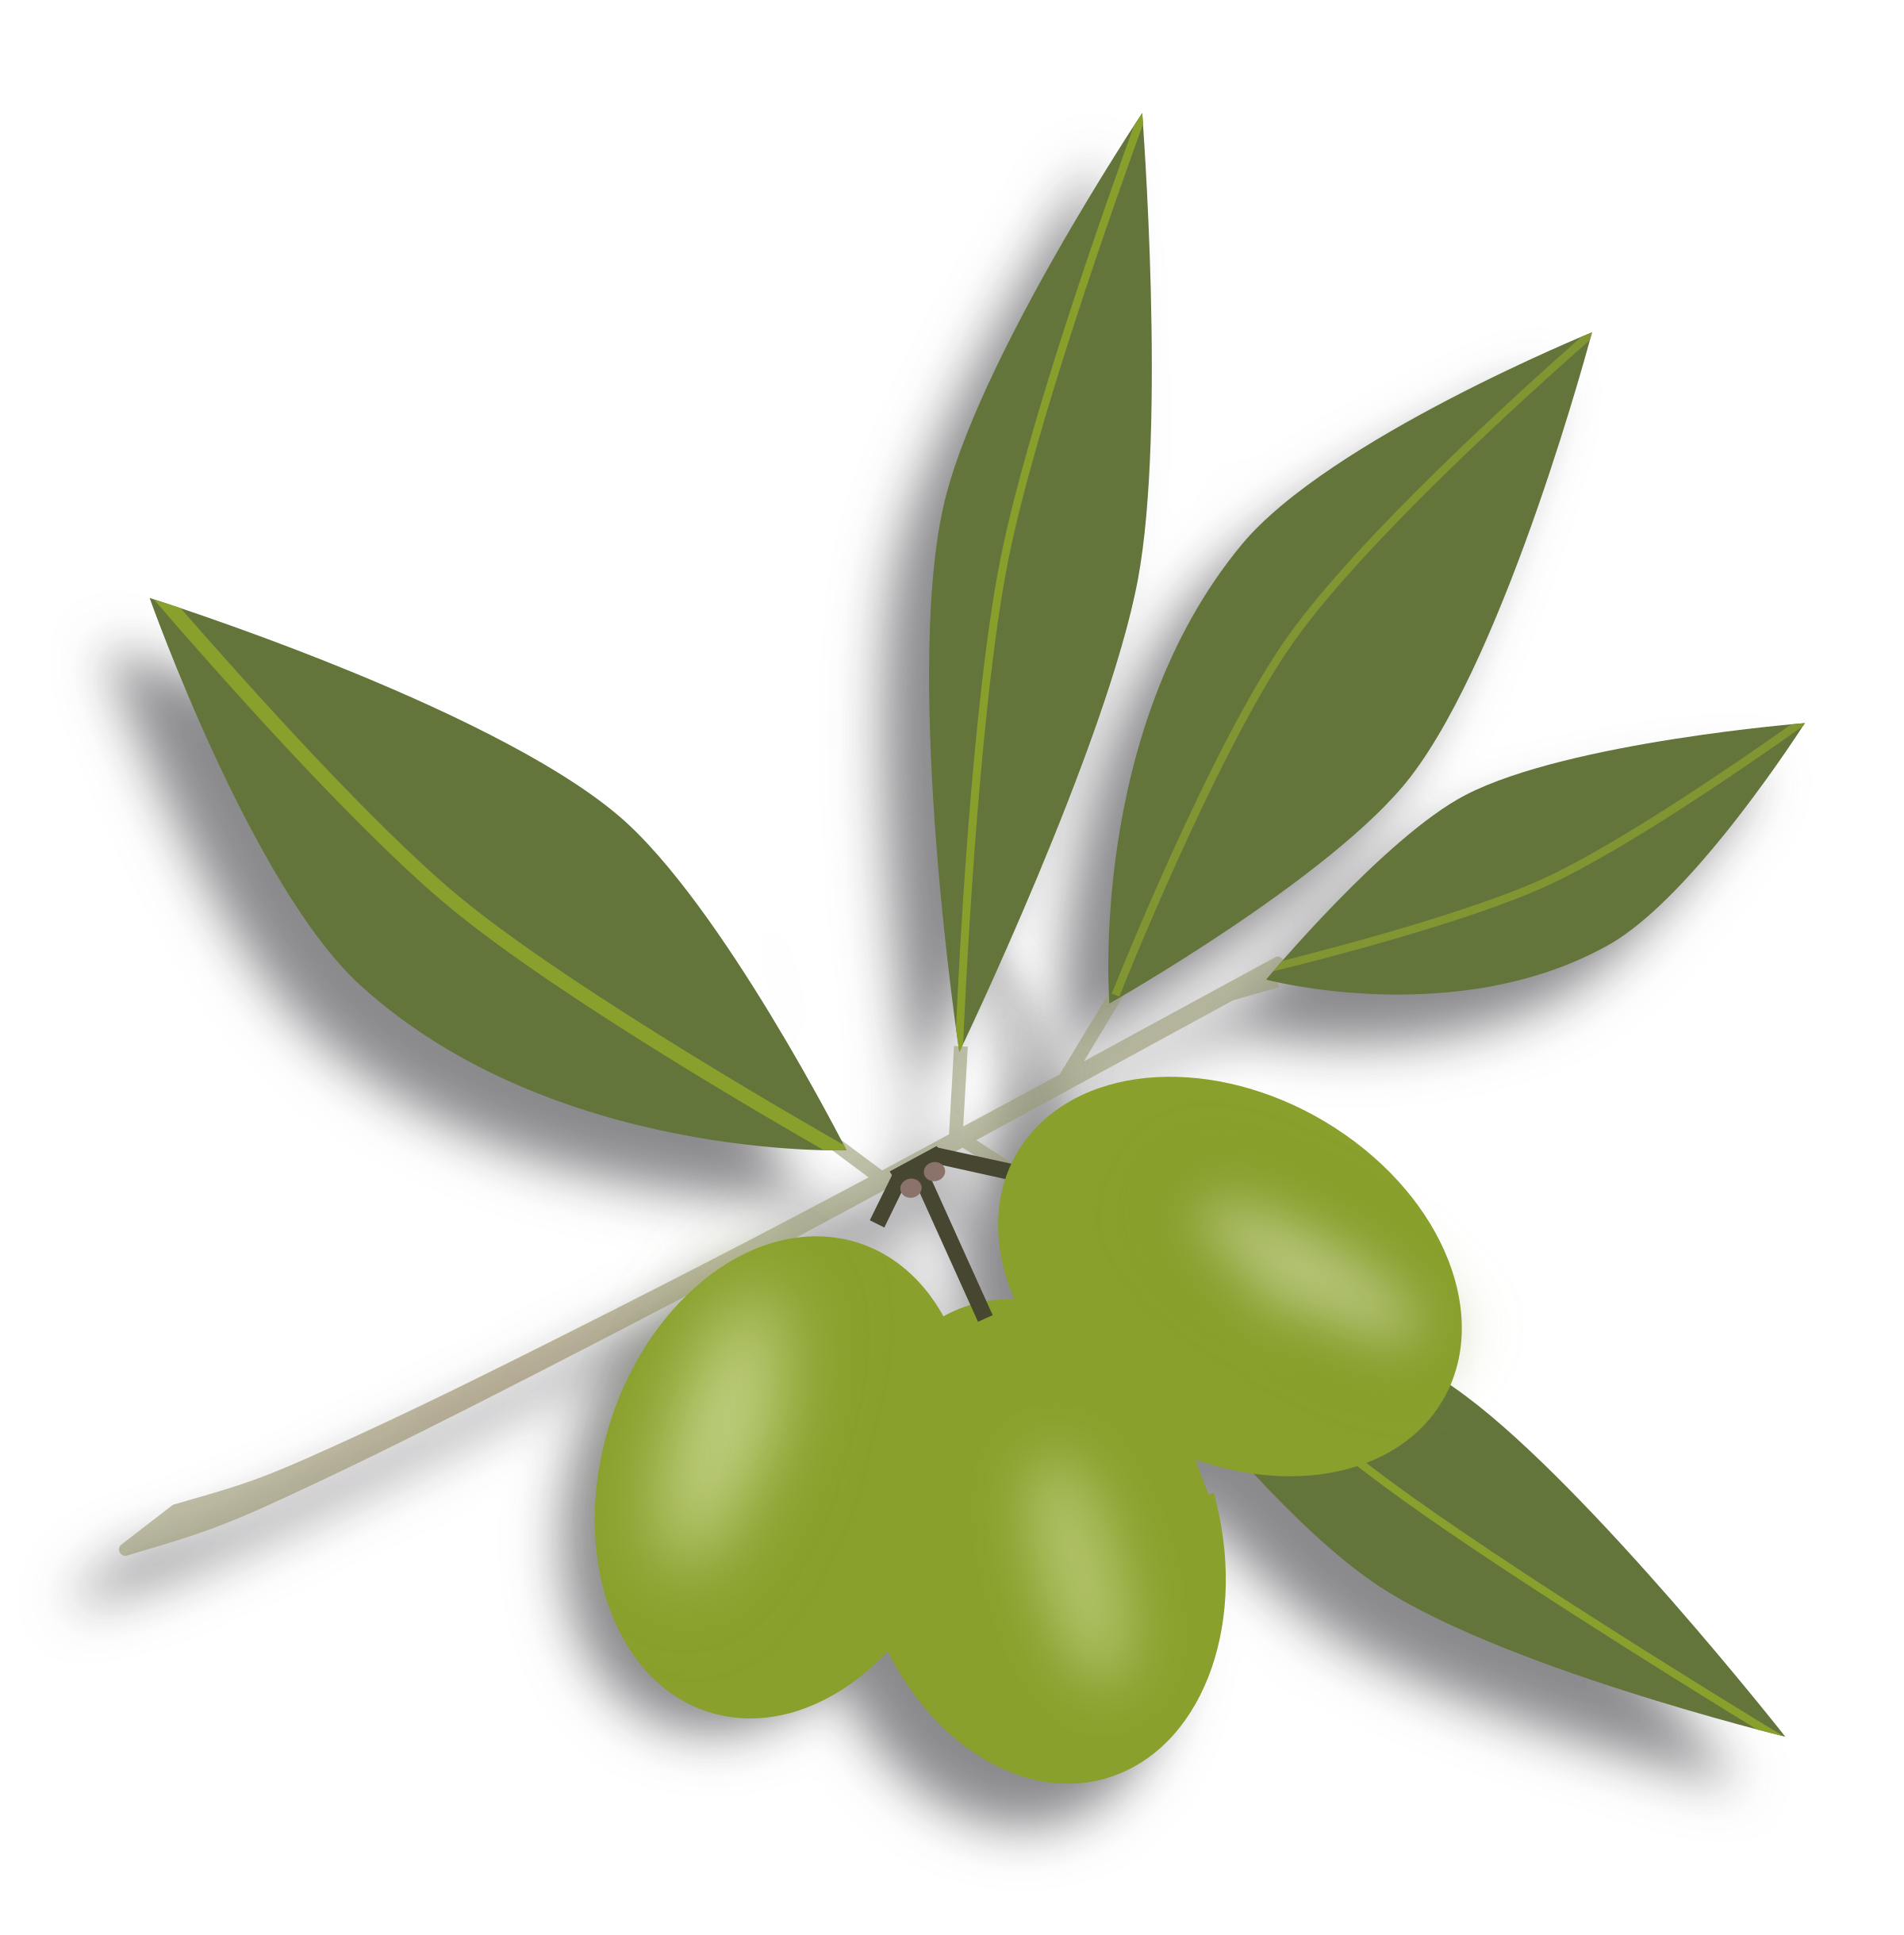 Olive clipart black plum. Free olives cliparts download